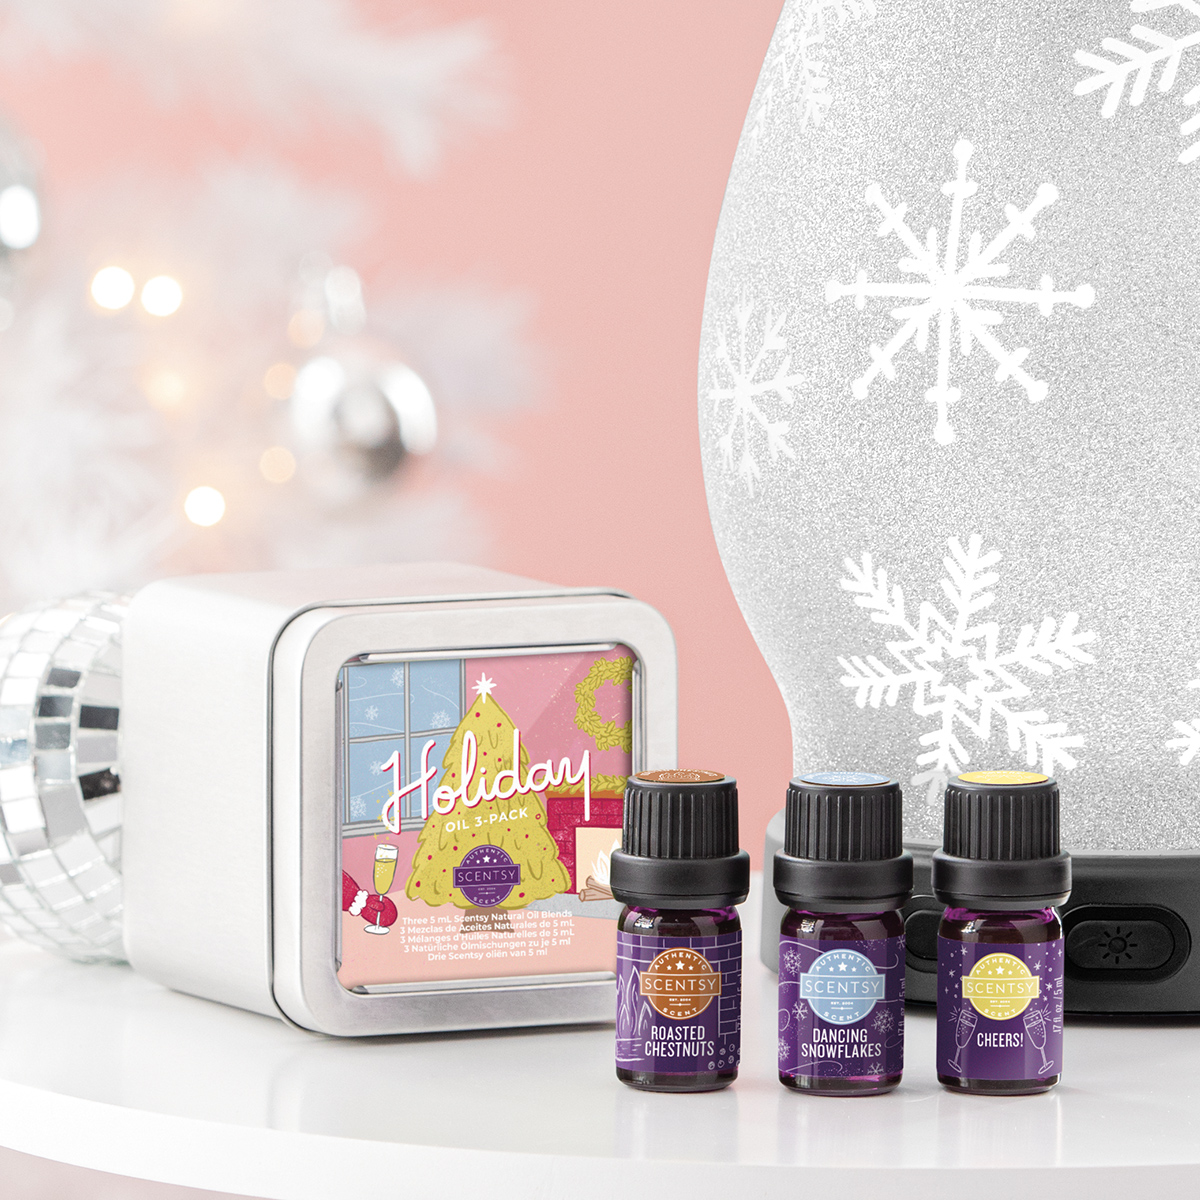 Scentsy Christmas Oils 3 Pack Scentsy Online Store New Authentic Fragrance Products